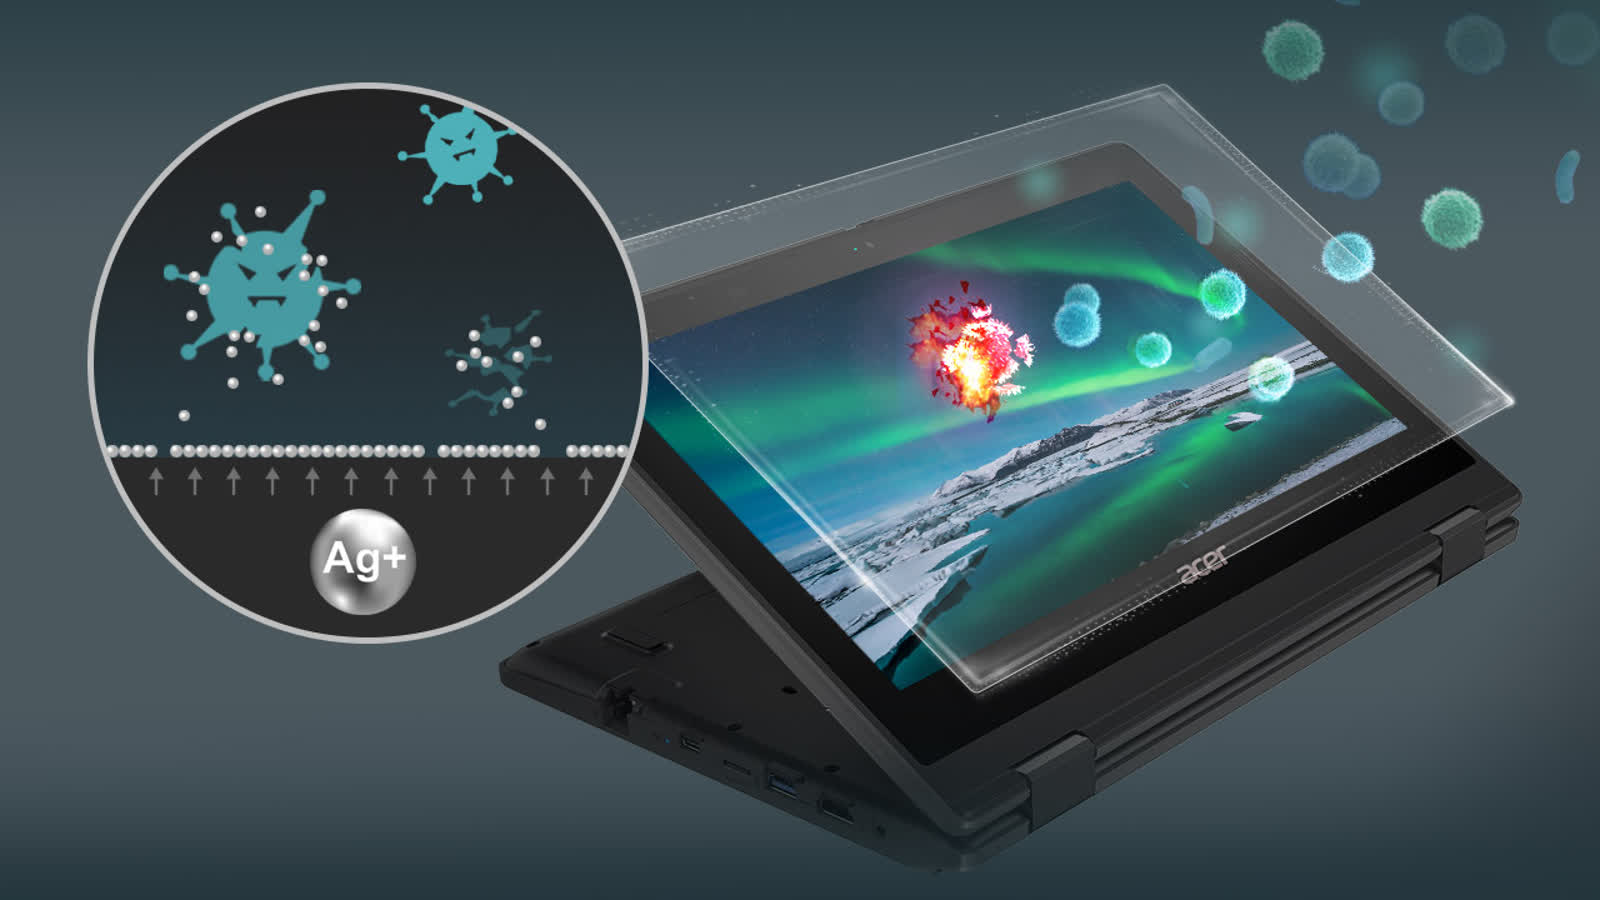 Acer announces new laptops and a tablet with anti-bacterial technology